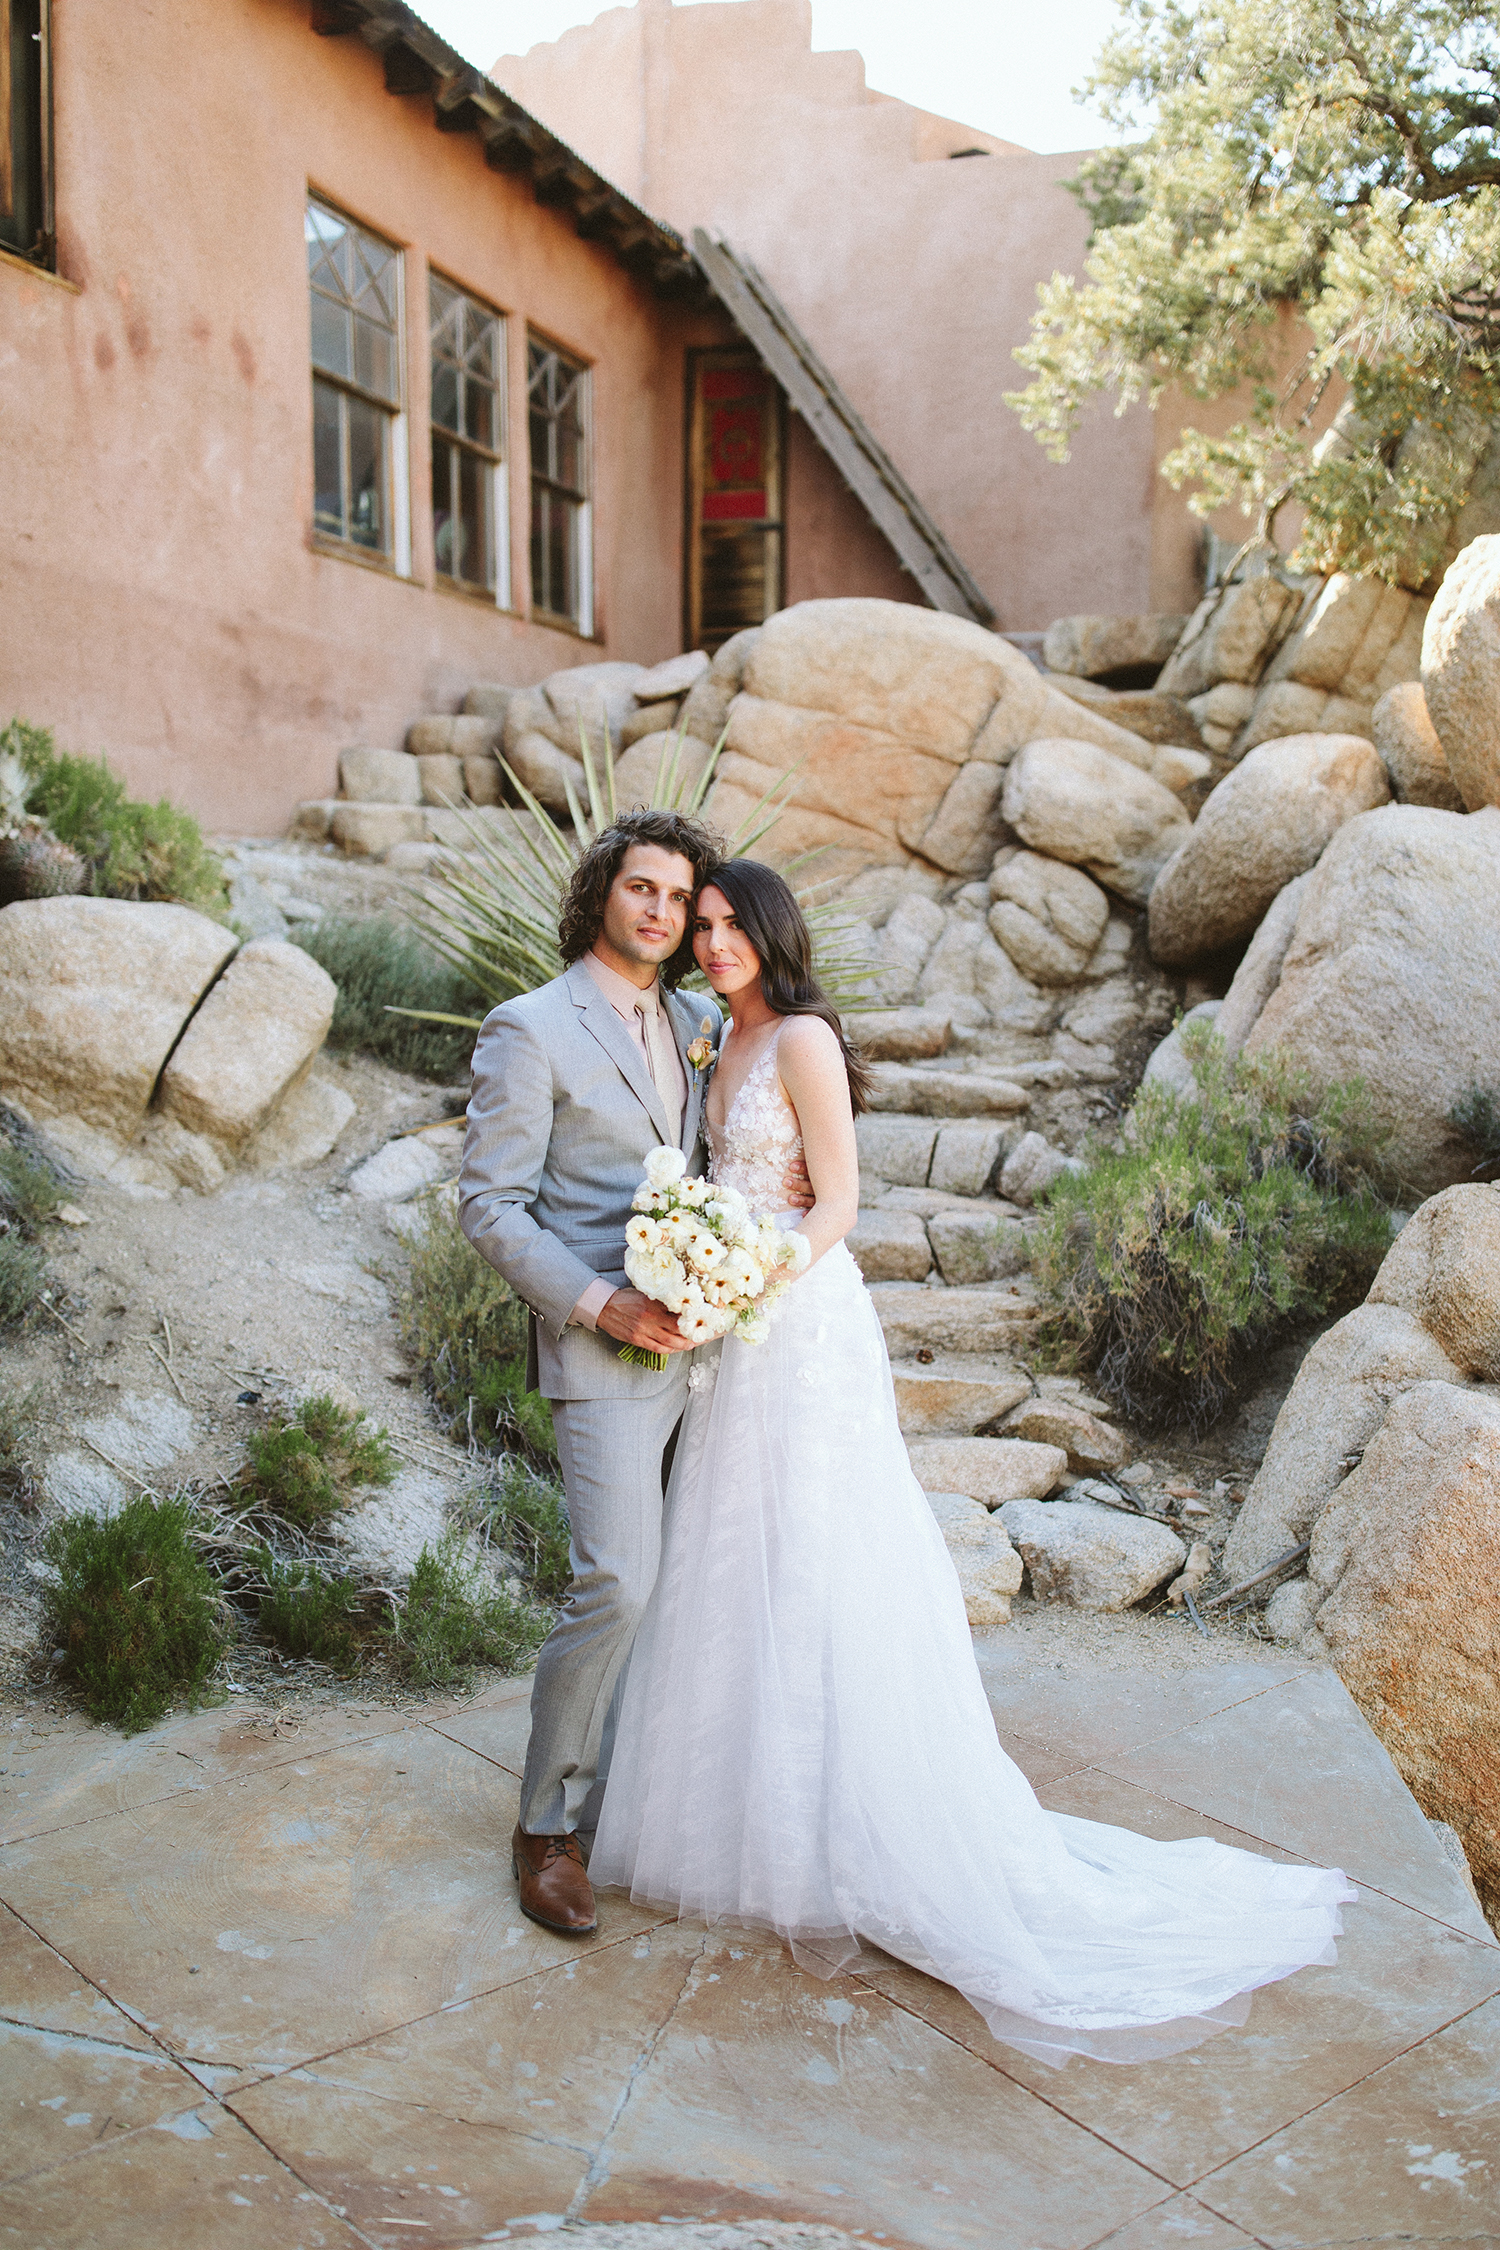 One Couple Planned a Glam-Meets-Boho Wedding in the California Desert